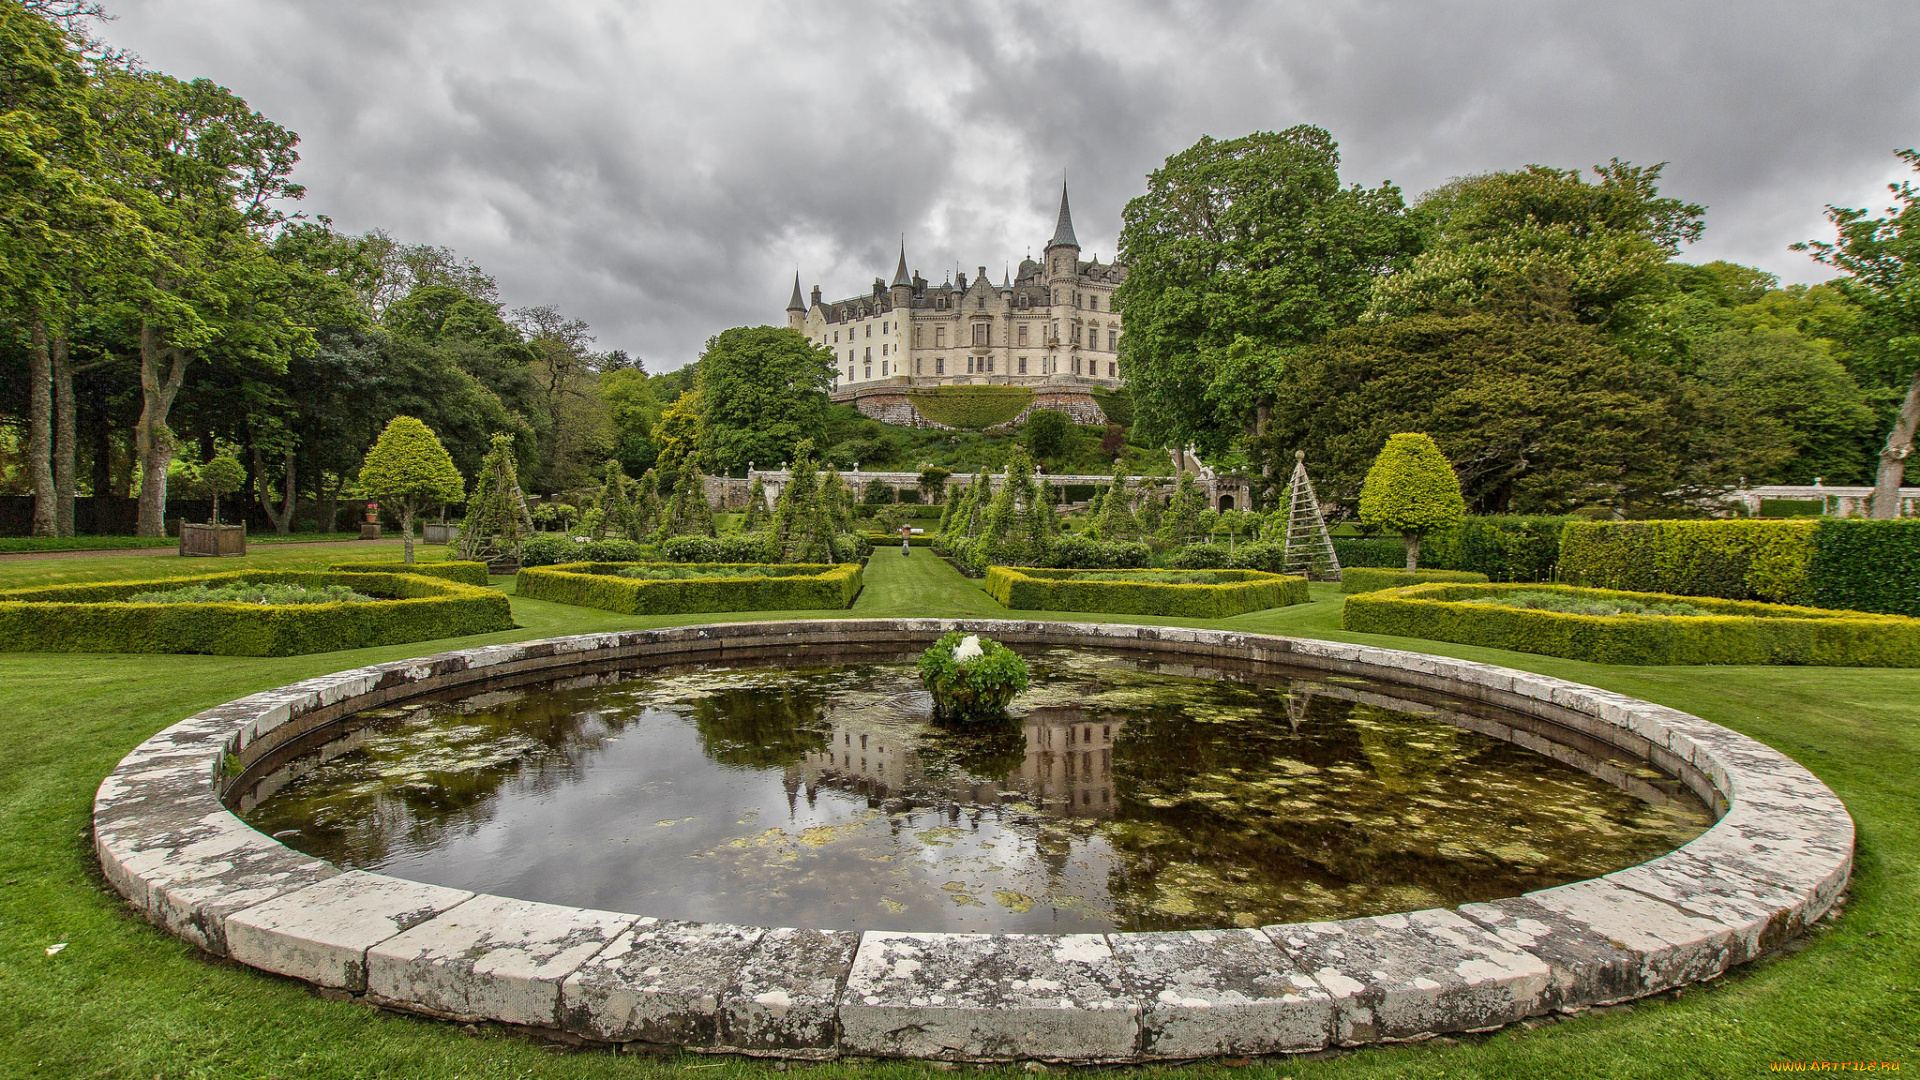 dunrobin black personals Events & tours go to top ↑  also a stop is planned at the majestic dunrobin castle, dating back to the 1300sthere will be breathtaking views along the windswept cliffs of scotland's east coast, and you'll have an overnight stay in the eastern highlands sunday, sept 23 continues the visit to the eastern highlands, including a stop.